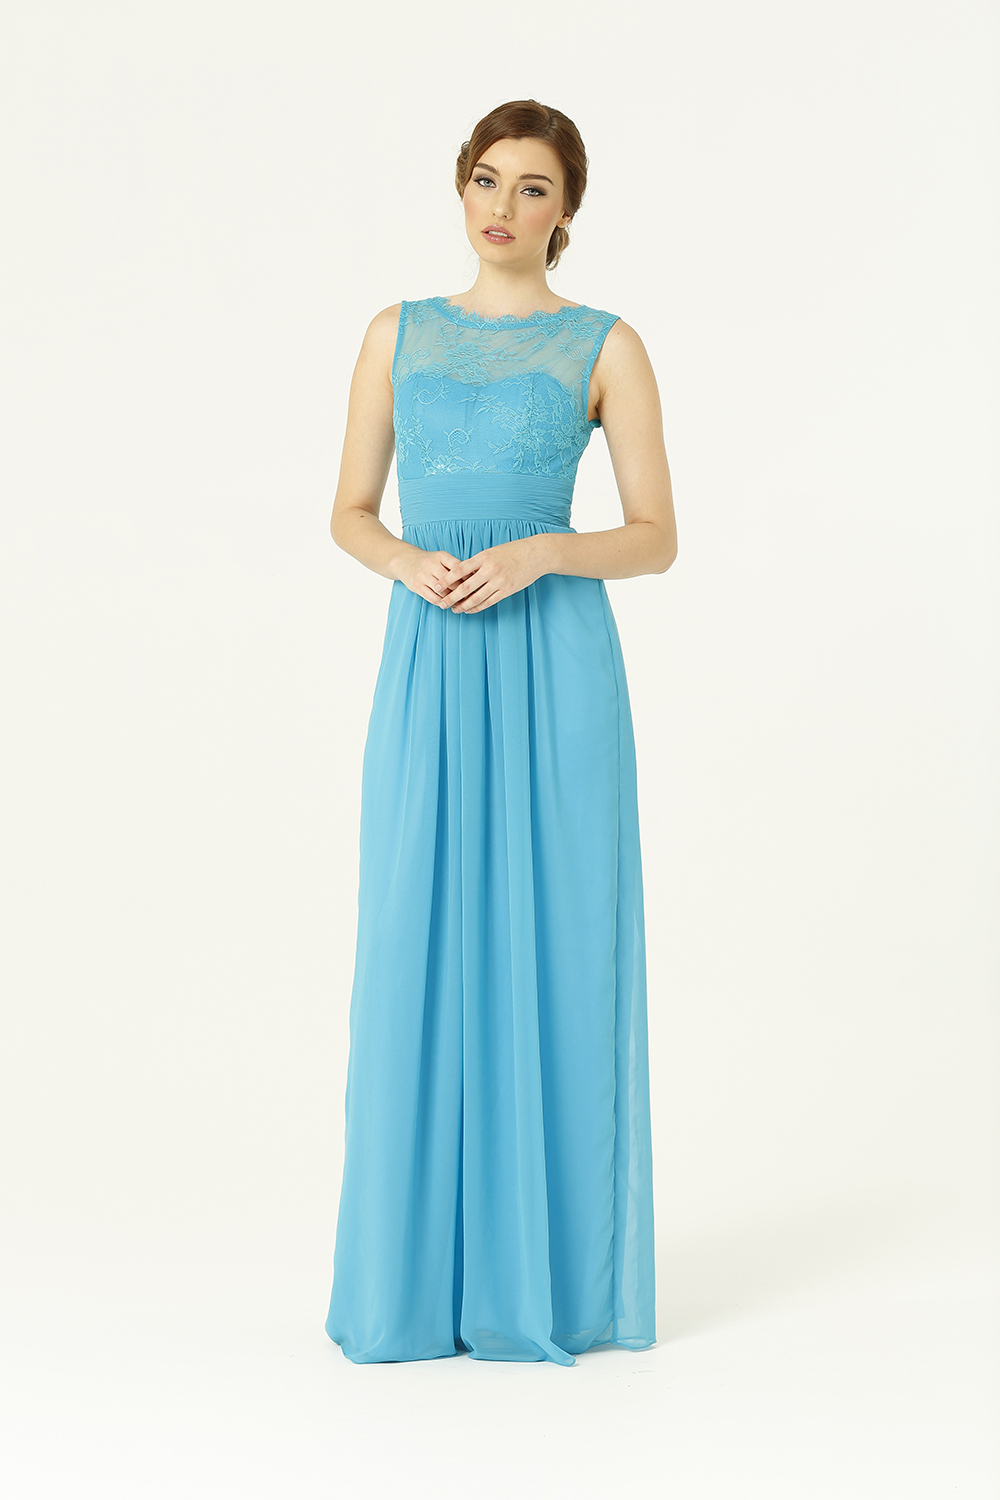 PO34 Charlotte Bridesmaids Dress - end of dye lot aqua